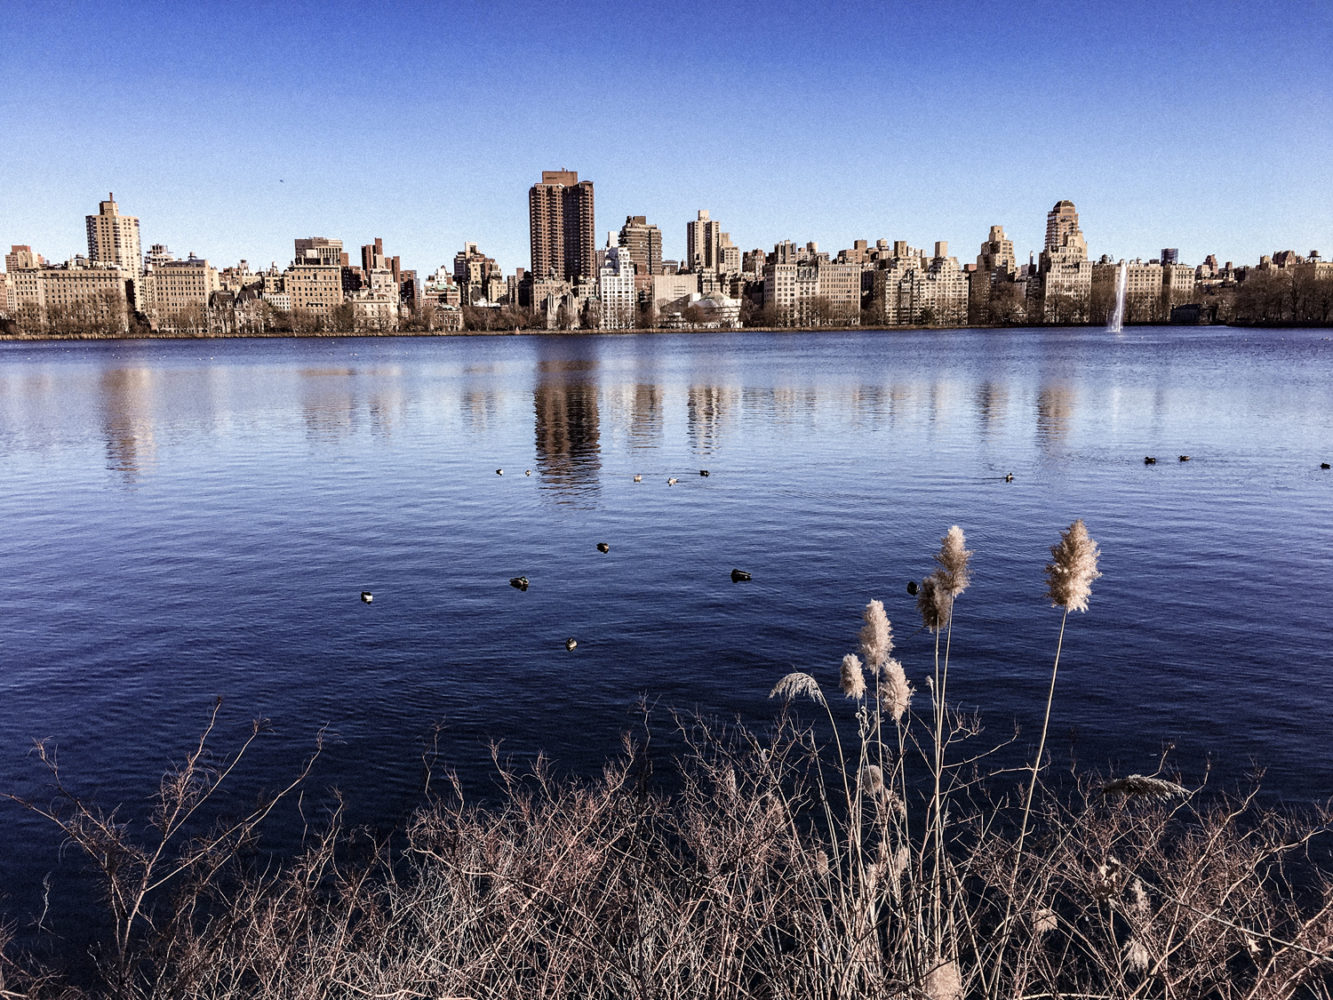 Vue sur le plus grand lac de Central Park